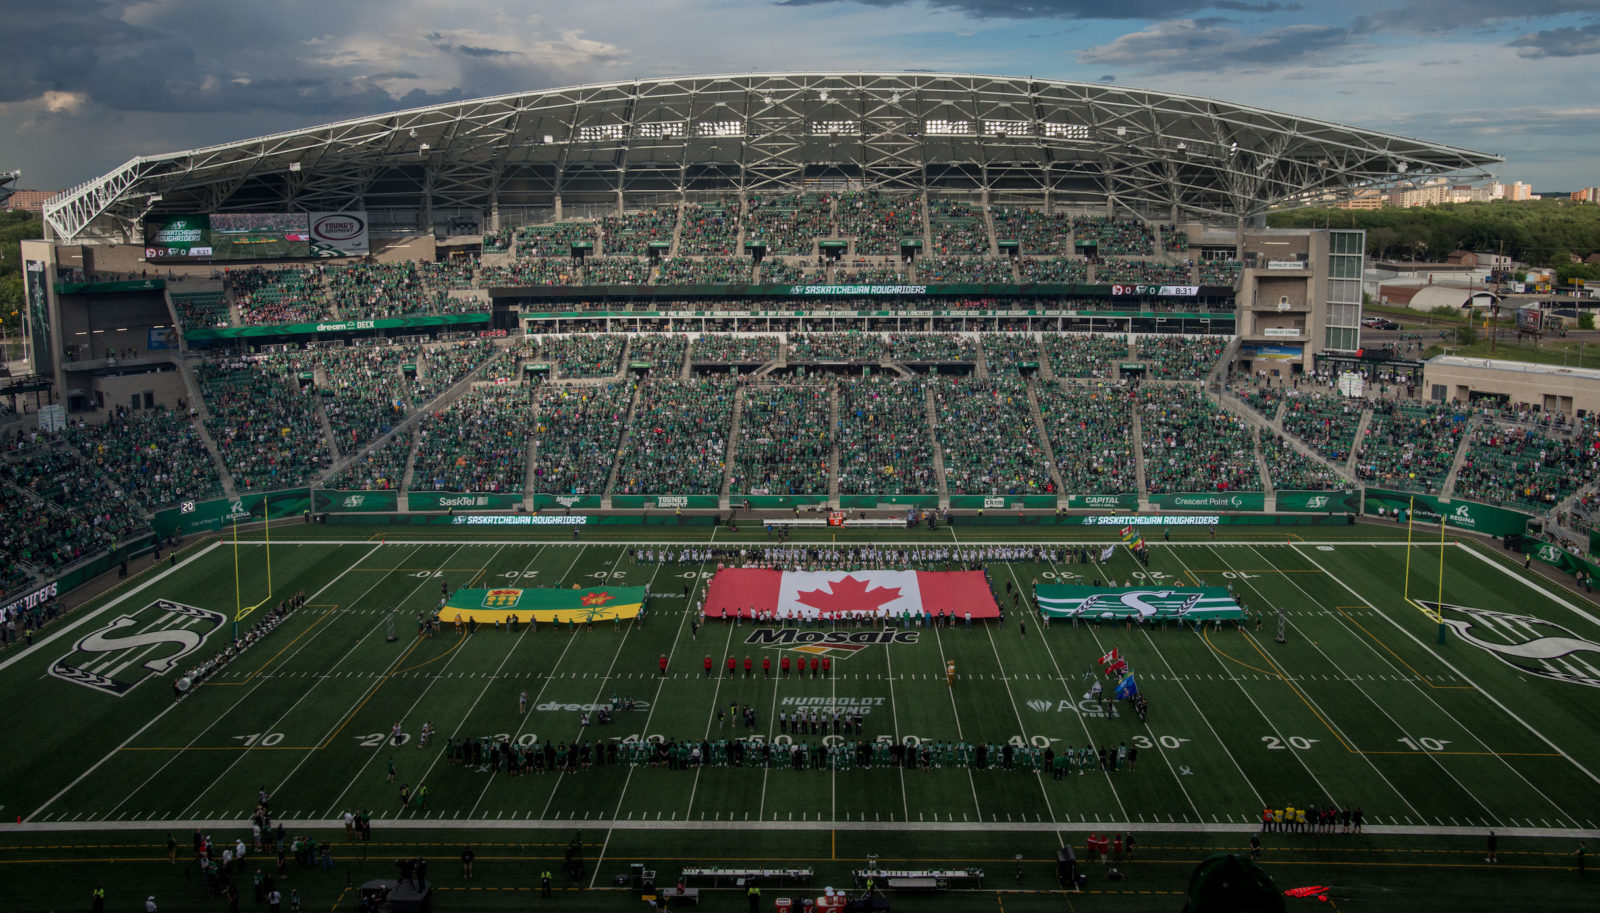 Rider fans being told by team not to wait when it comes to getting playoff tickets